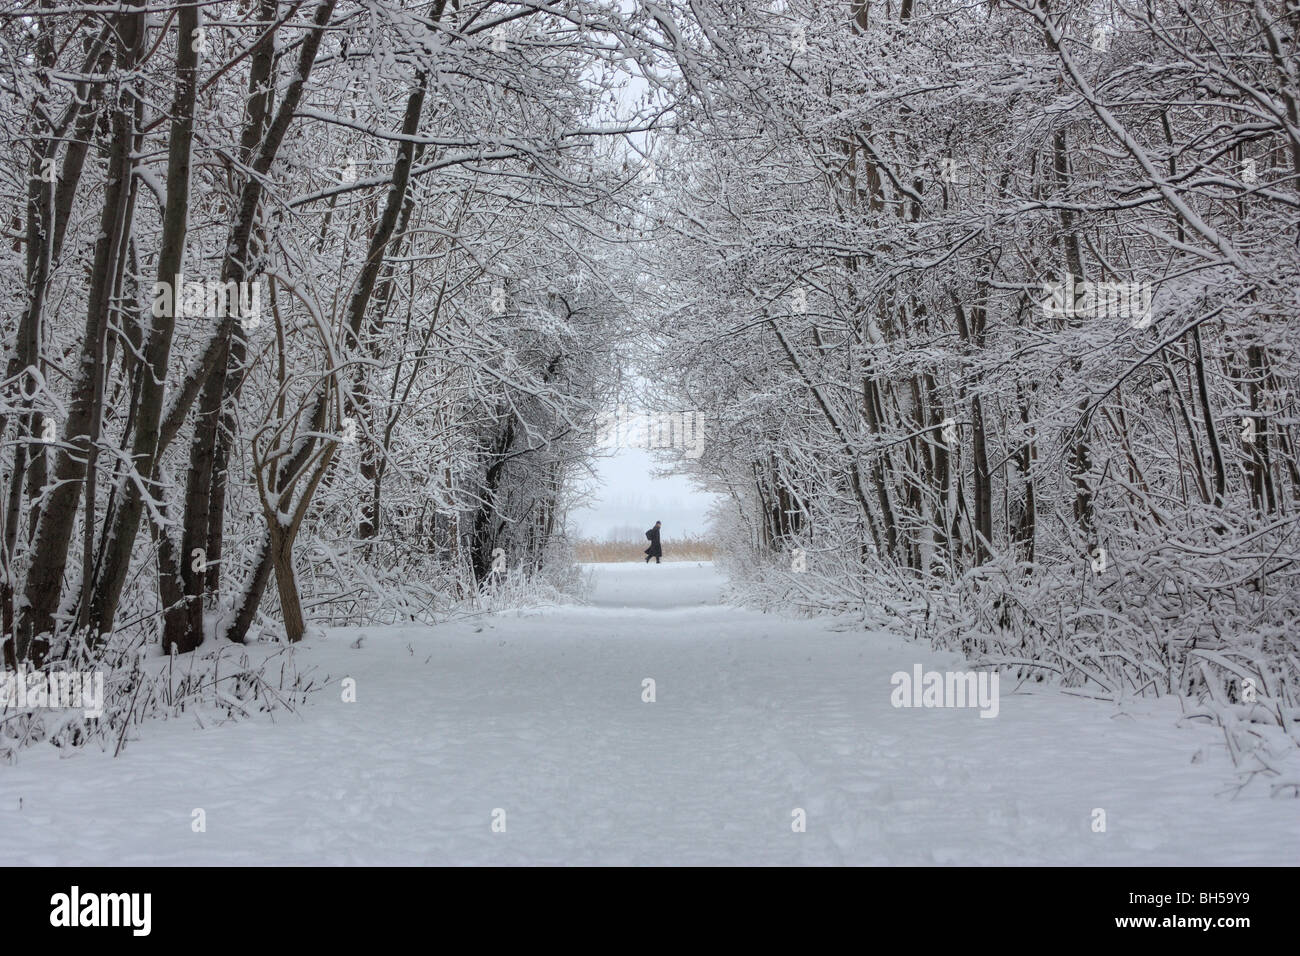 Snow forrest winter scenery - Stock Image